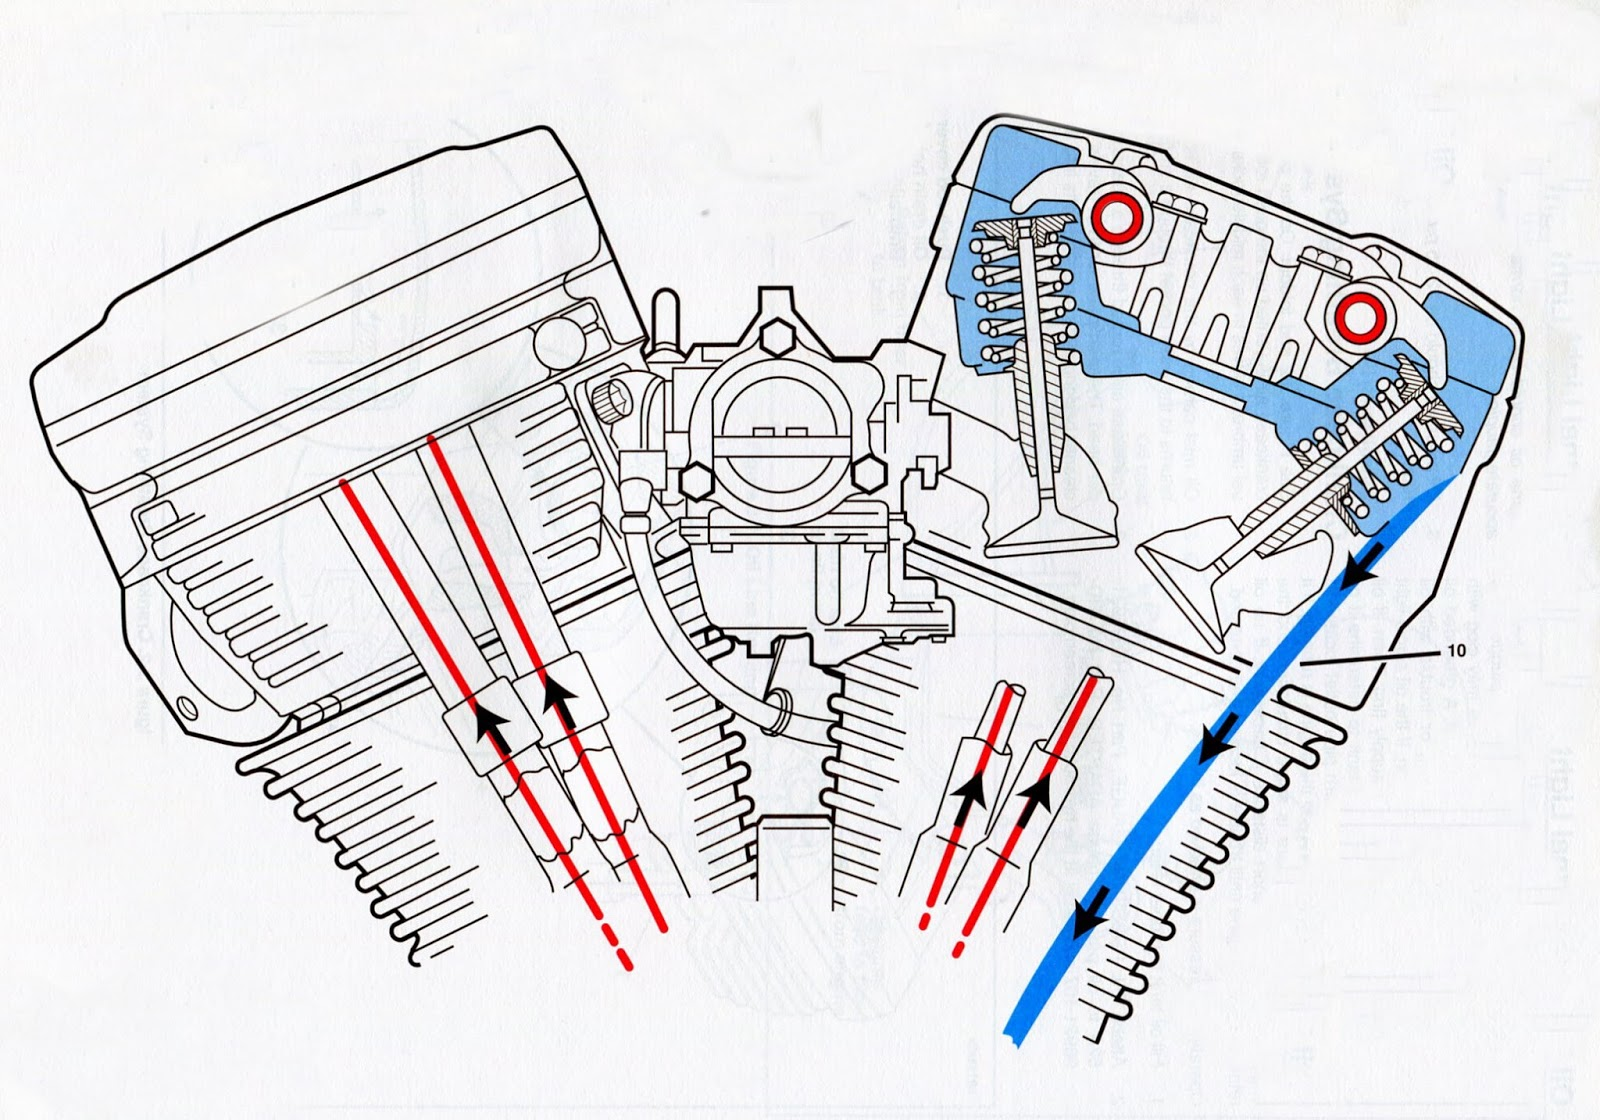 Schematic B: Oil Path through pushrod tubes and valves